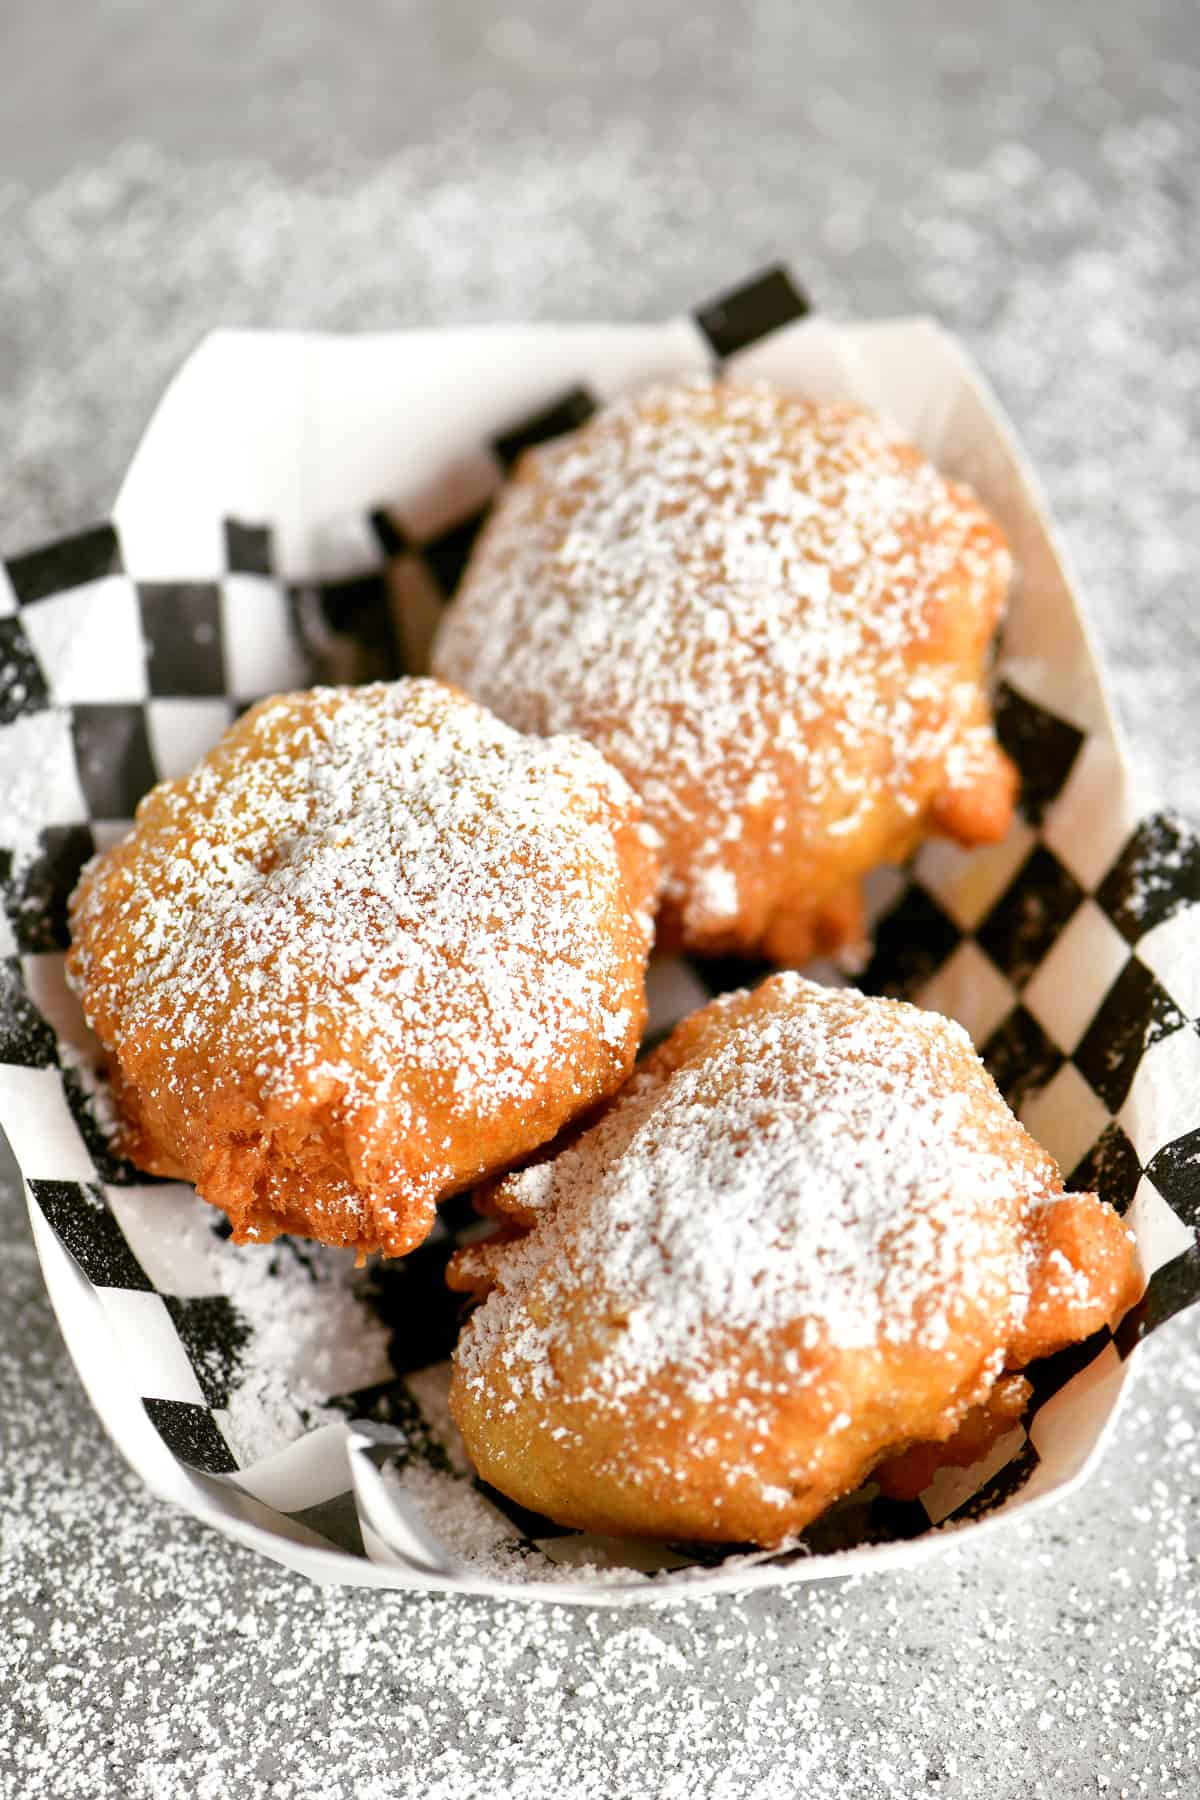 fried Oreos in a paper tray